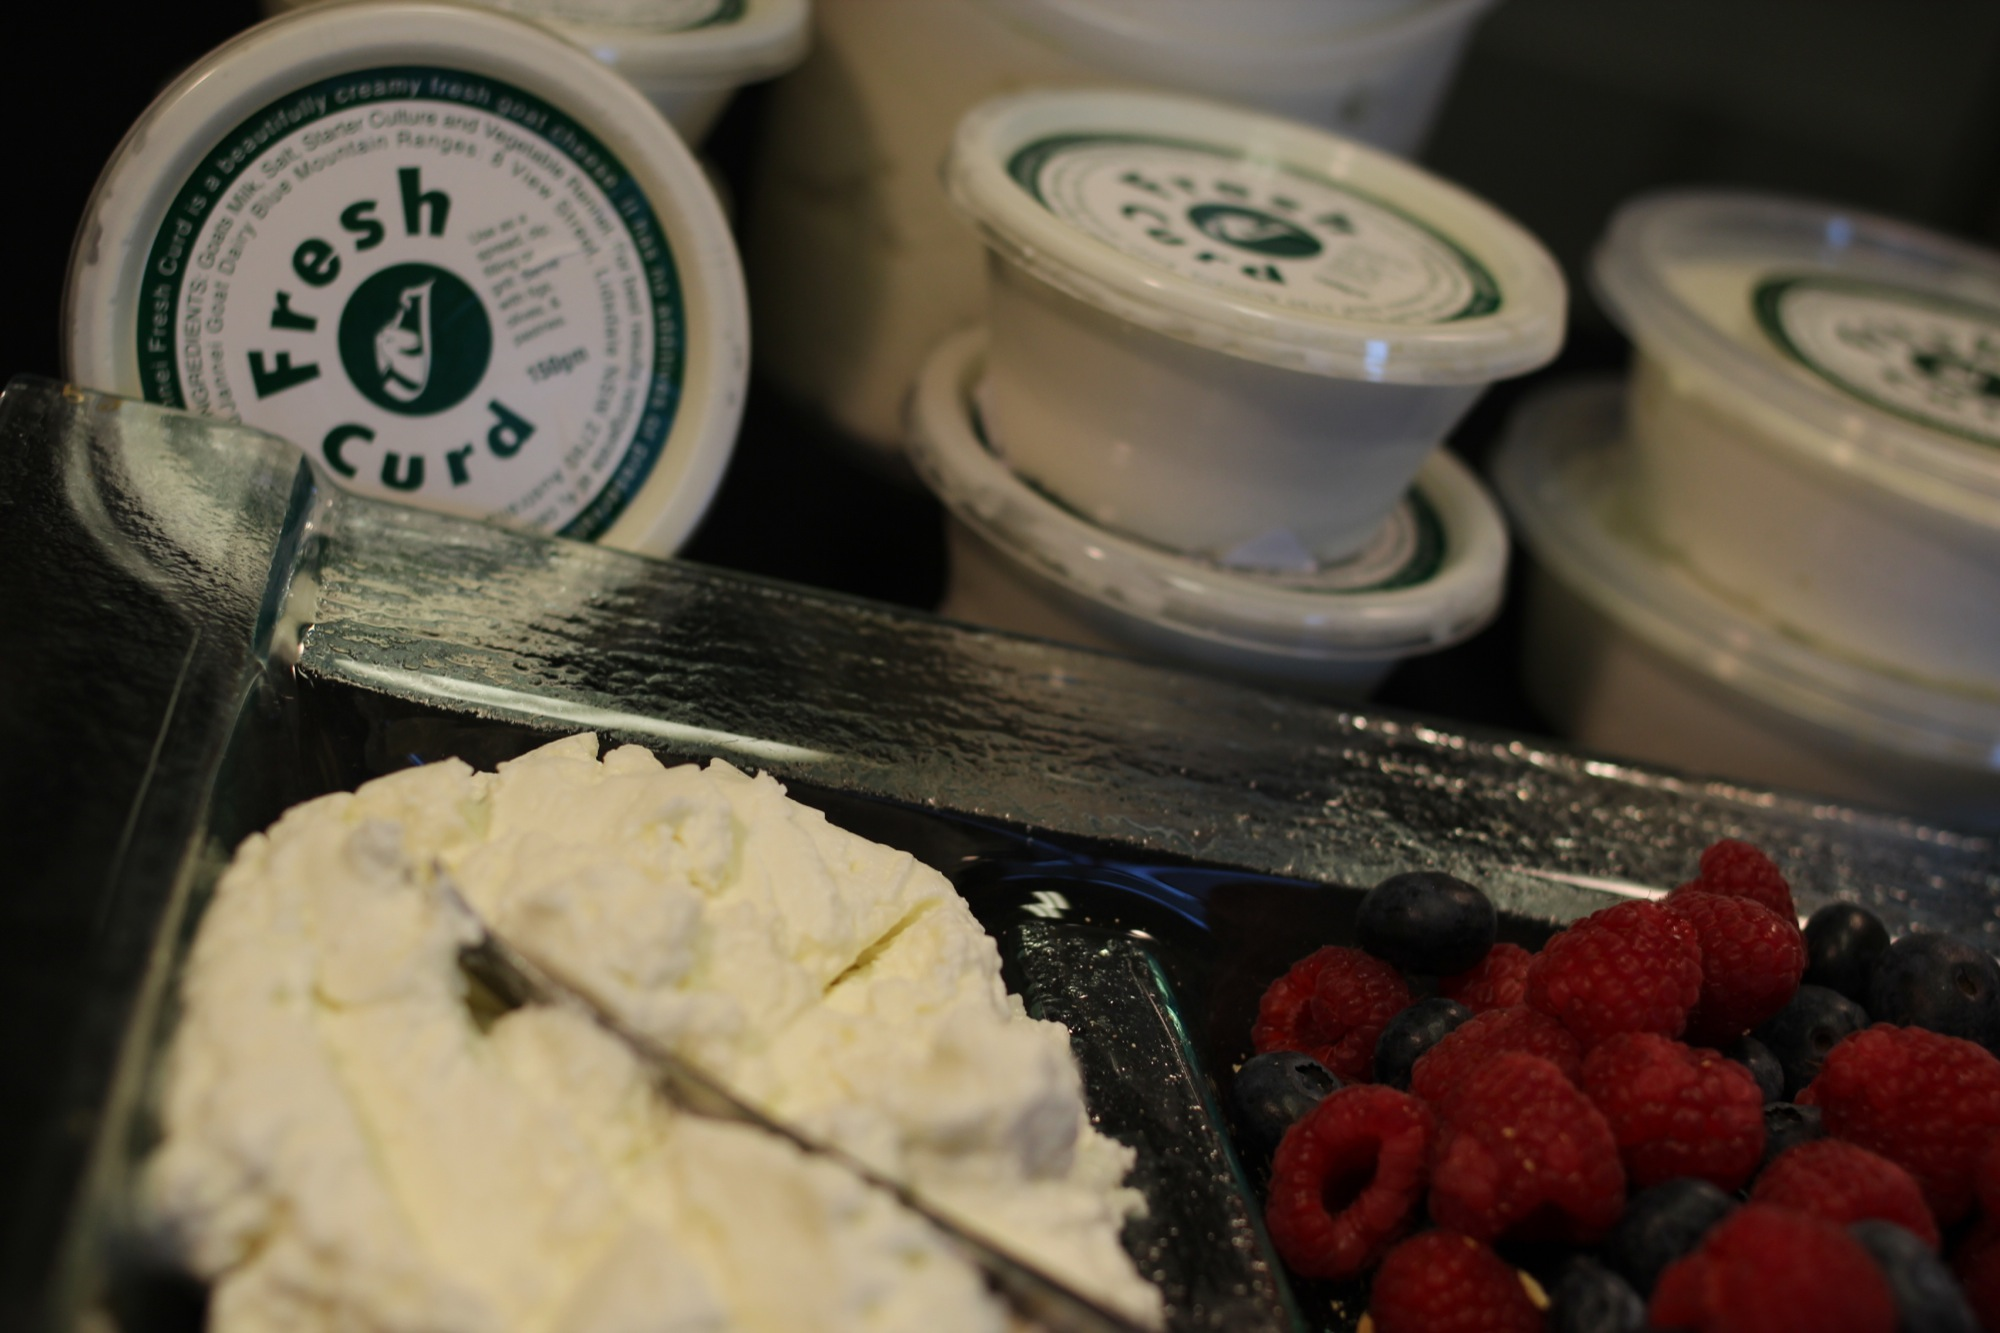 goat curd and berries